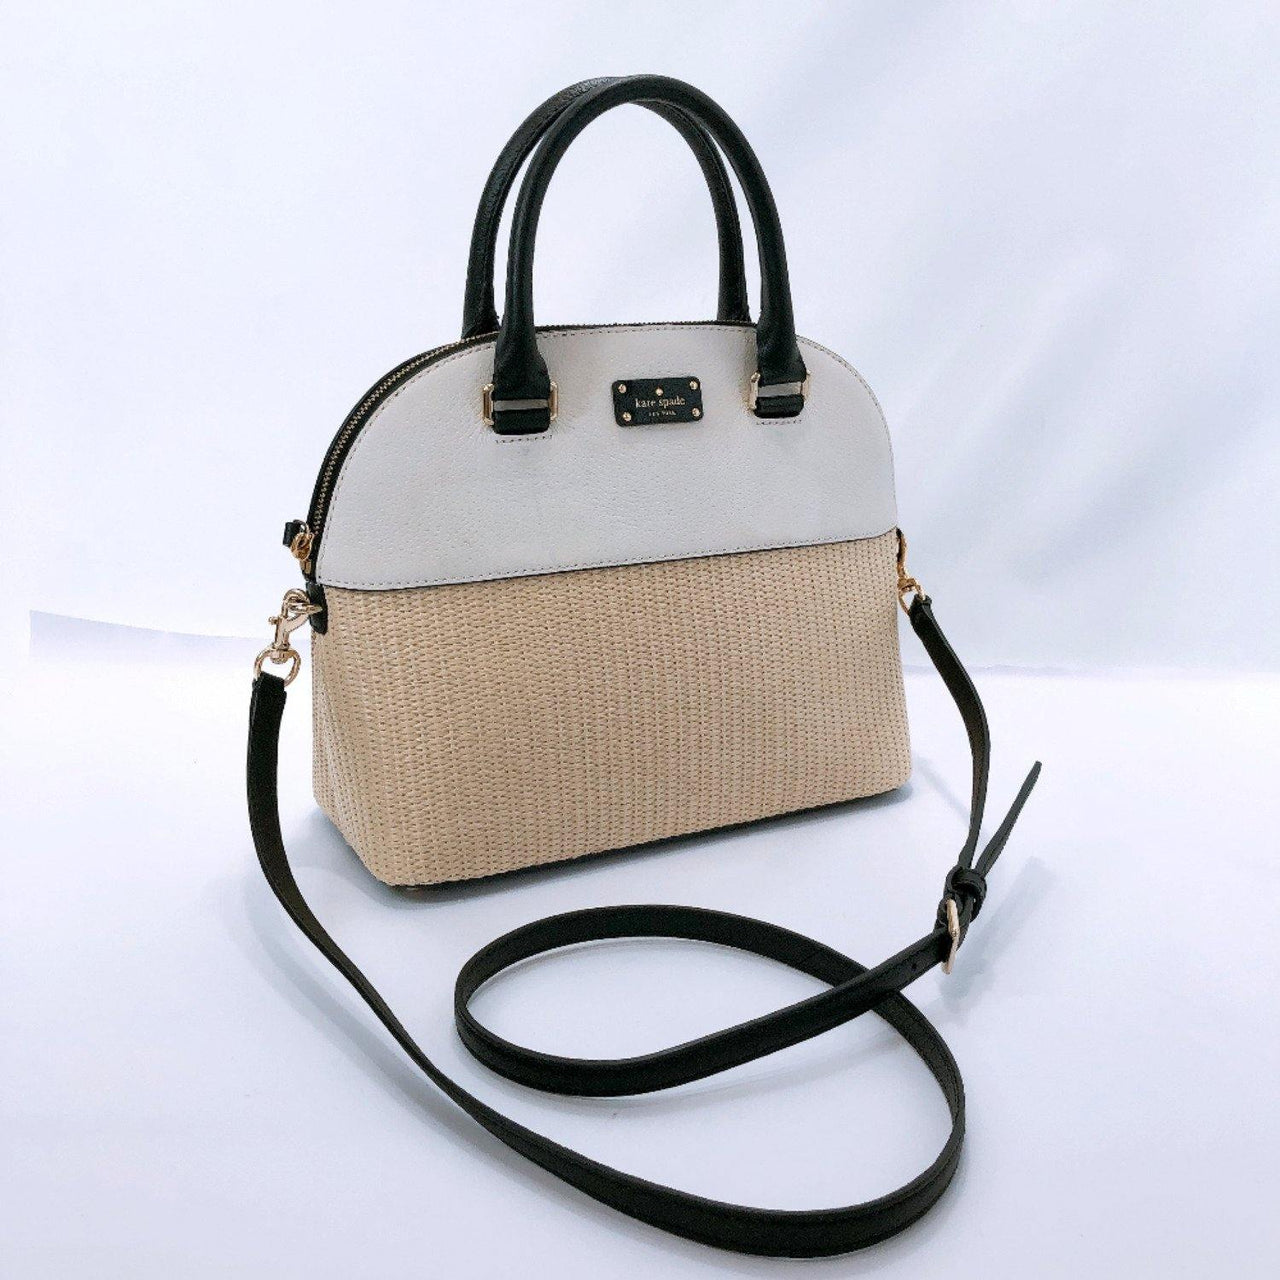 Kate Spade Handbag WKRU5476 Grove street 2way leather/straw white beige Women Used - JP-BRANDS.com